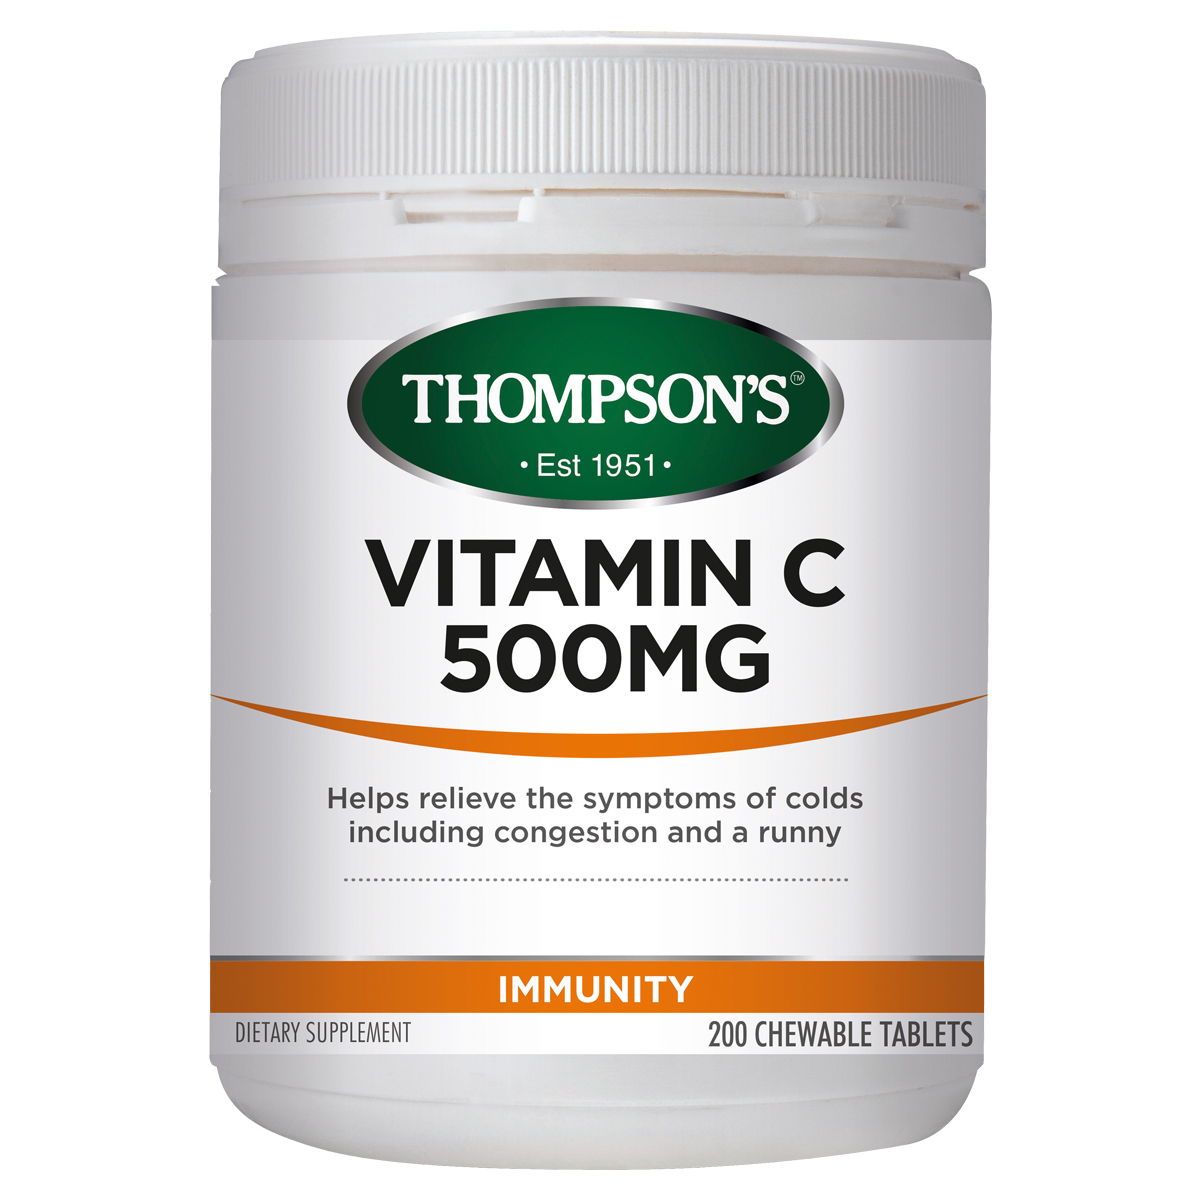 Thompsons Vitamin C 500mg 200 Chewable Tablets